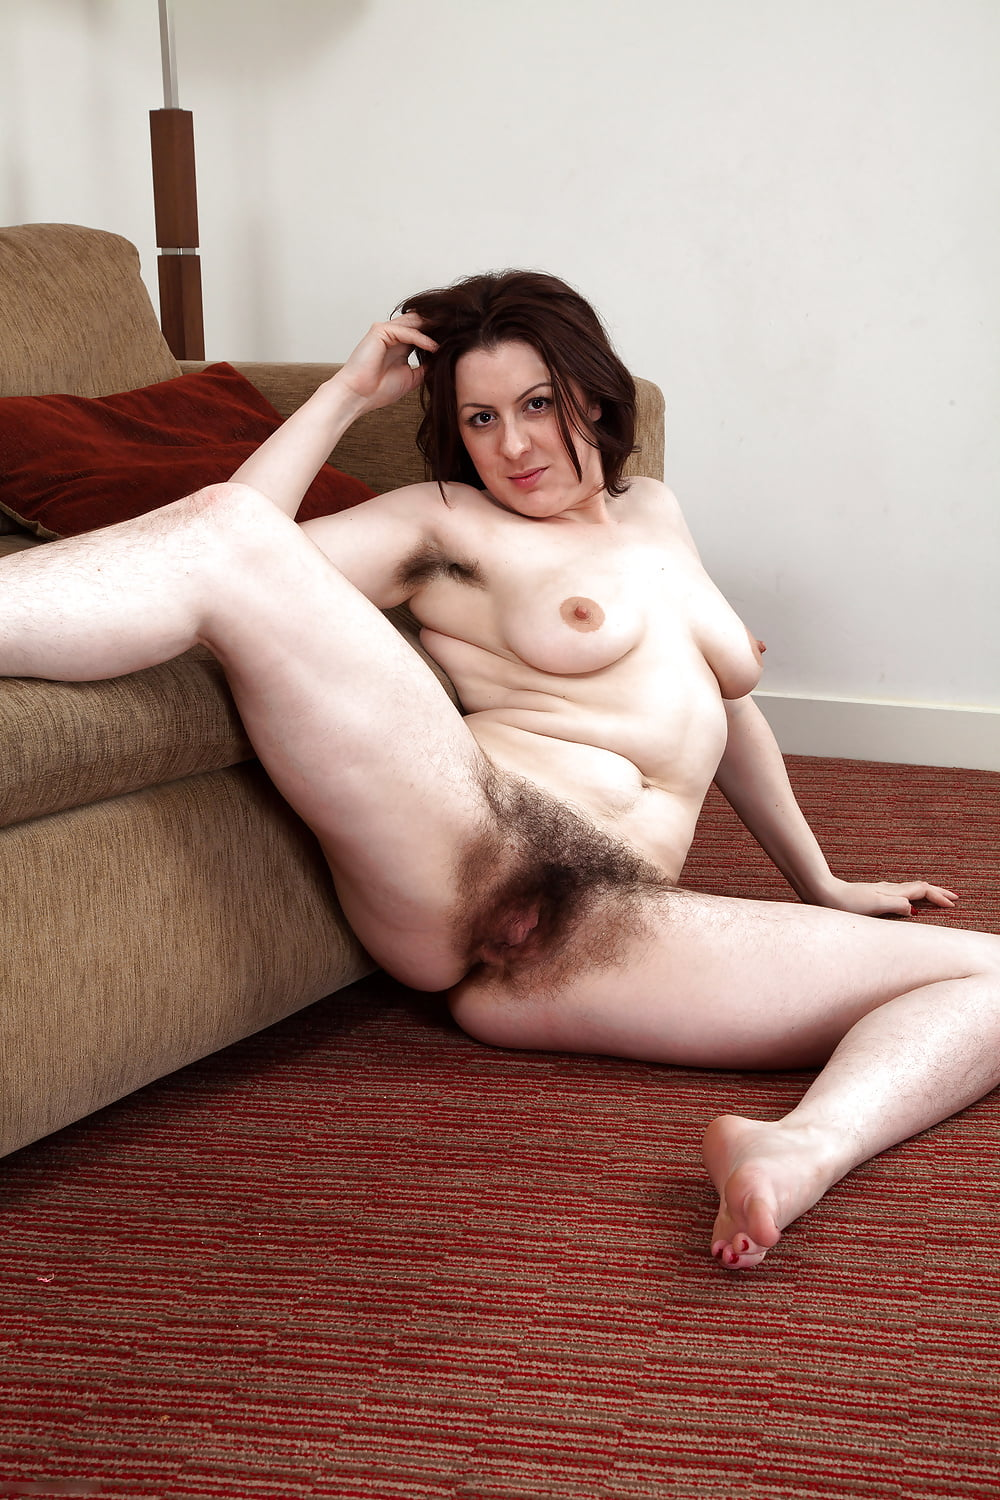 Hairy pussy + aunt